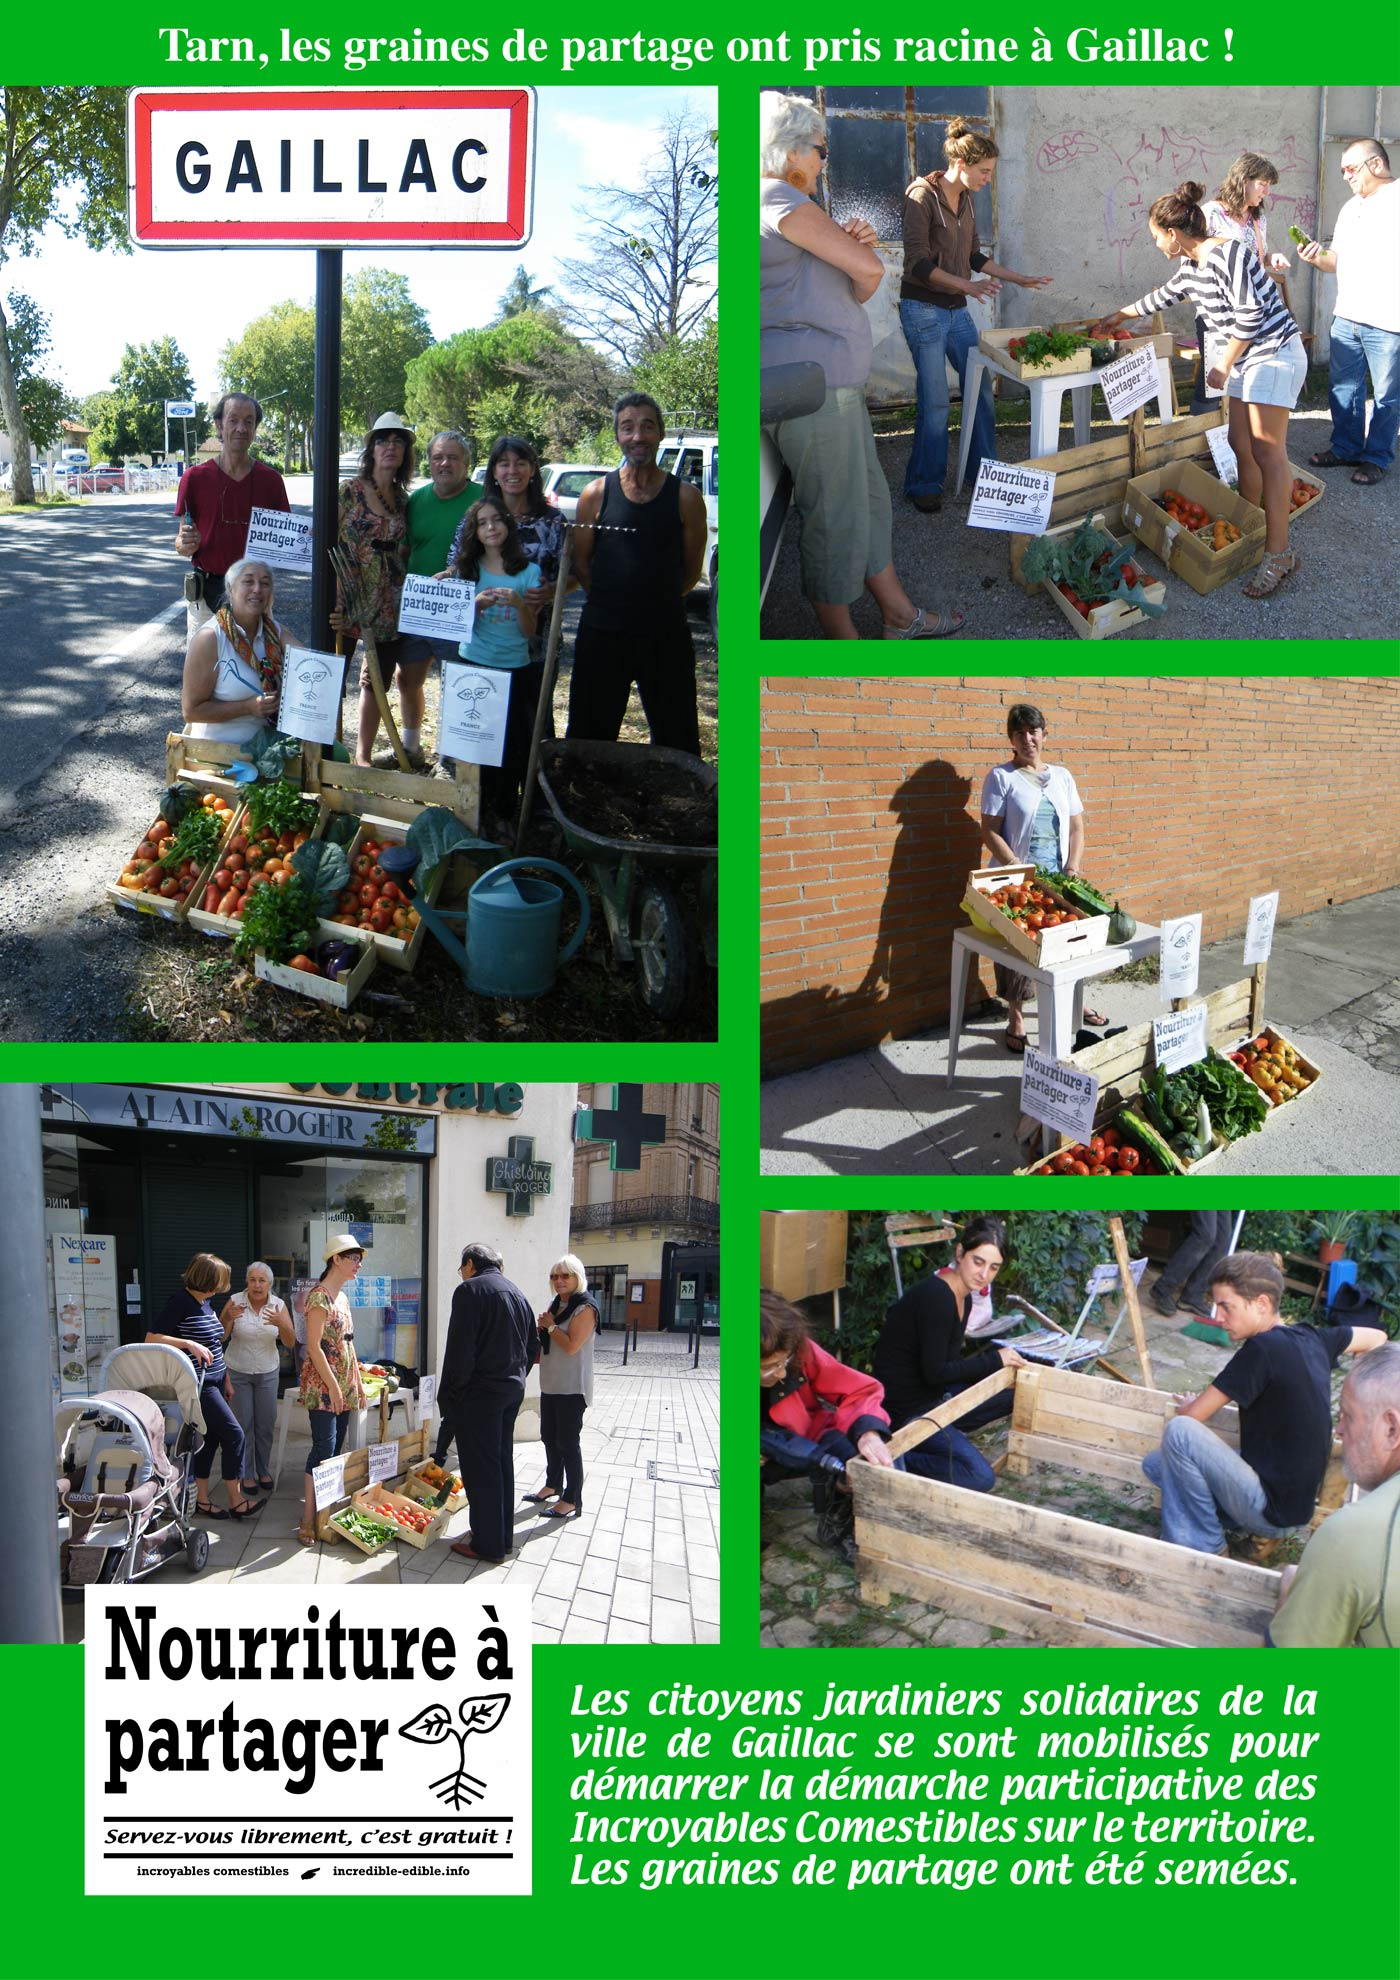 c607_incredible_edible_todmorden_france_tarn_gaillac_agriculture_urbaine_autosuffisance_alimentaire_incroyables_comestibles_w1400